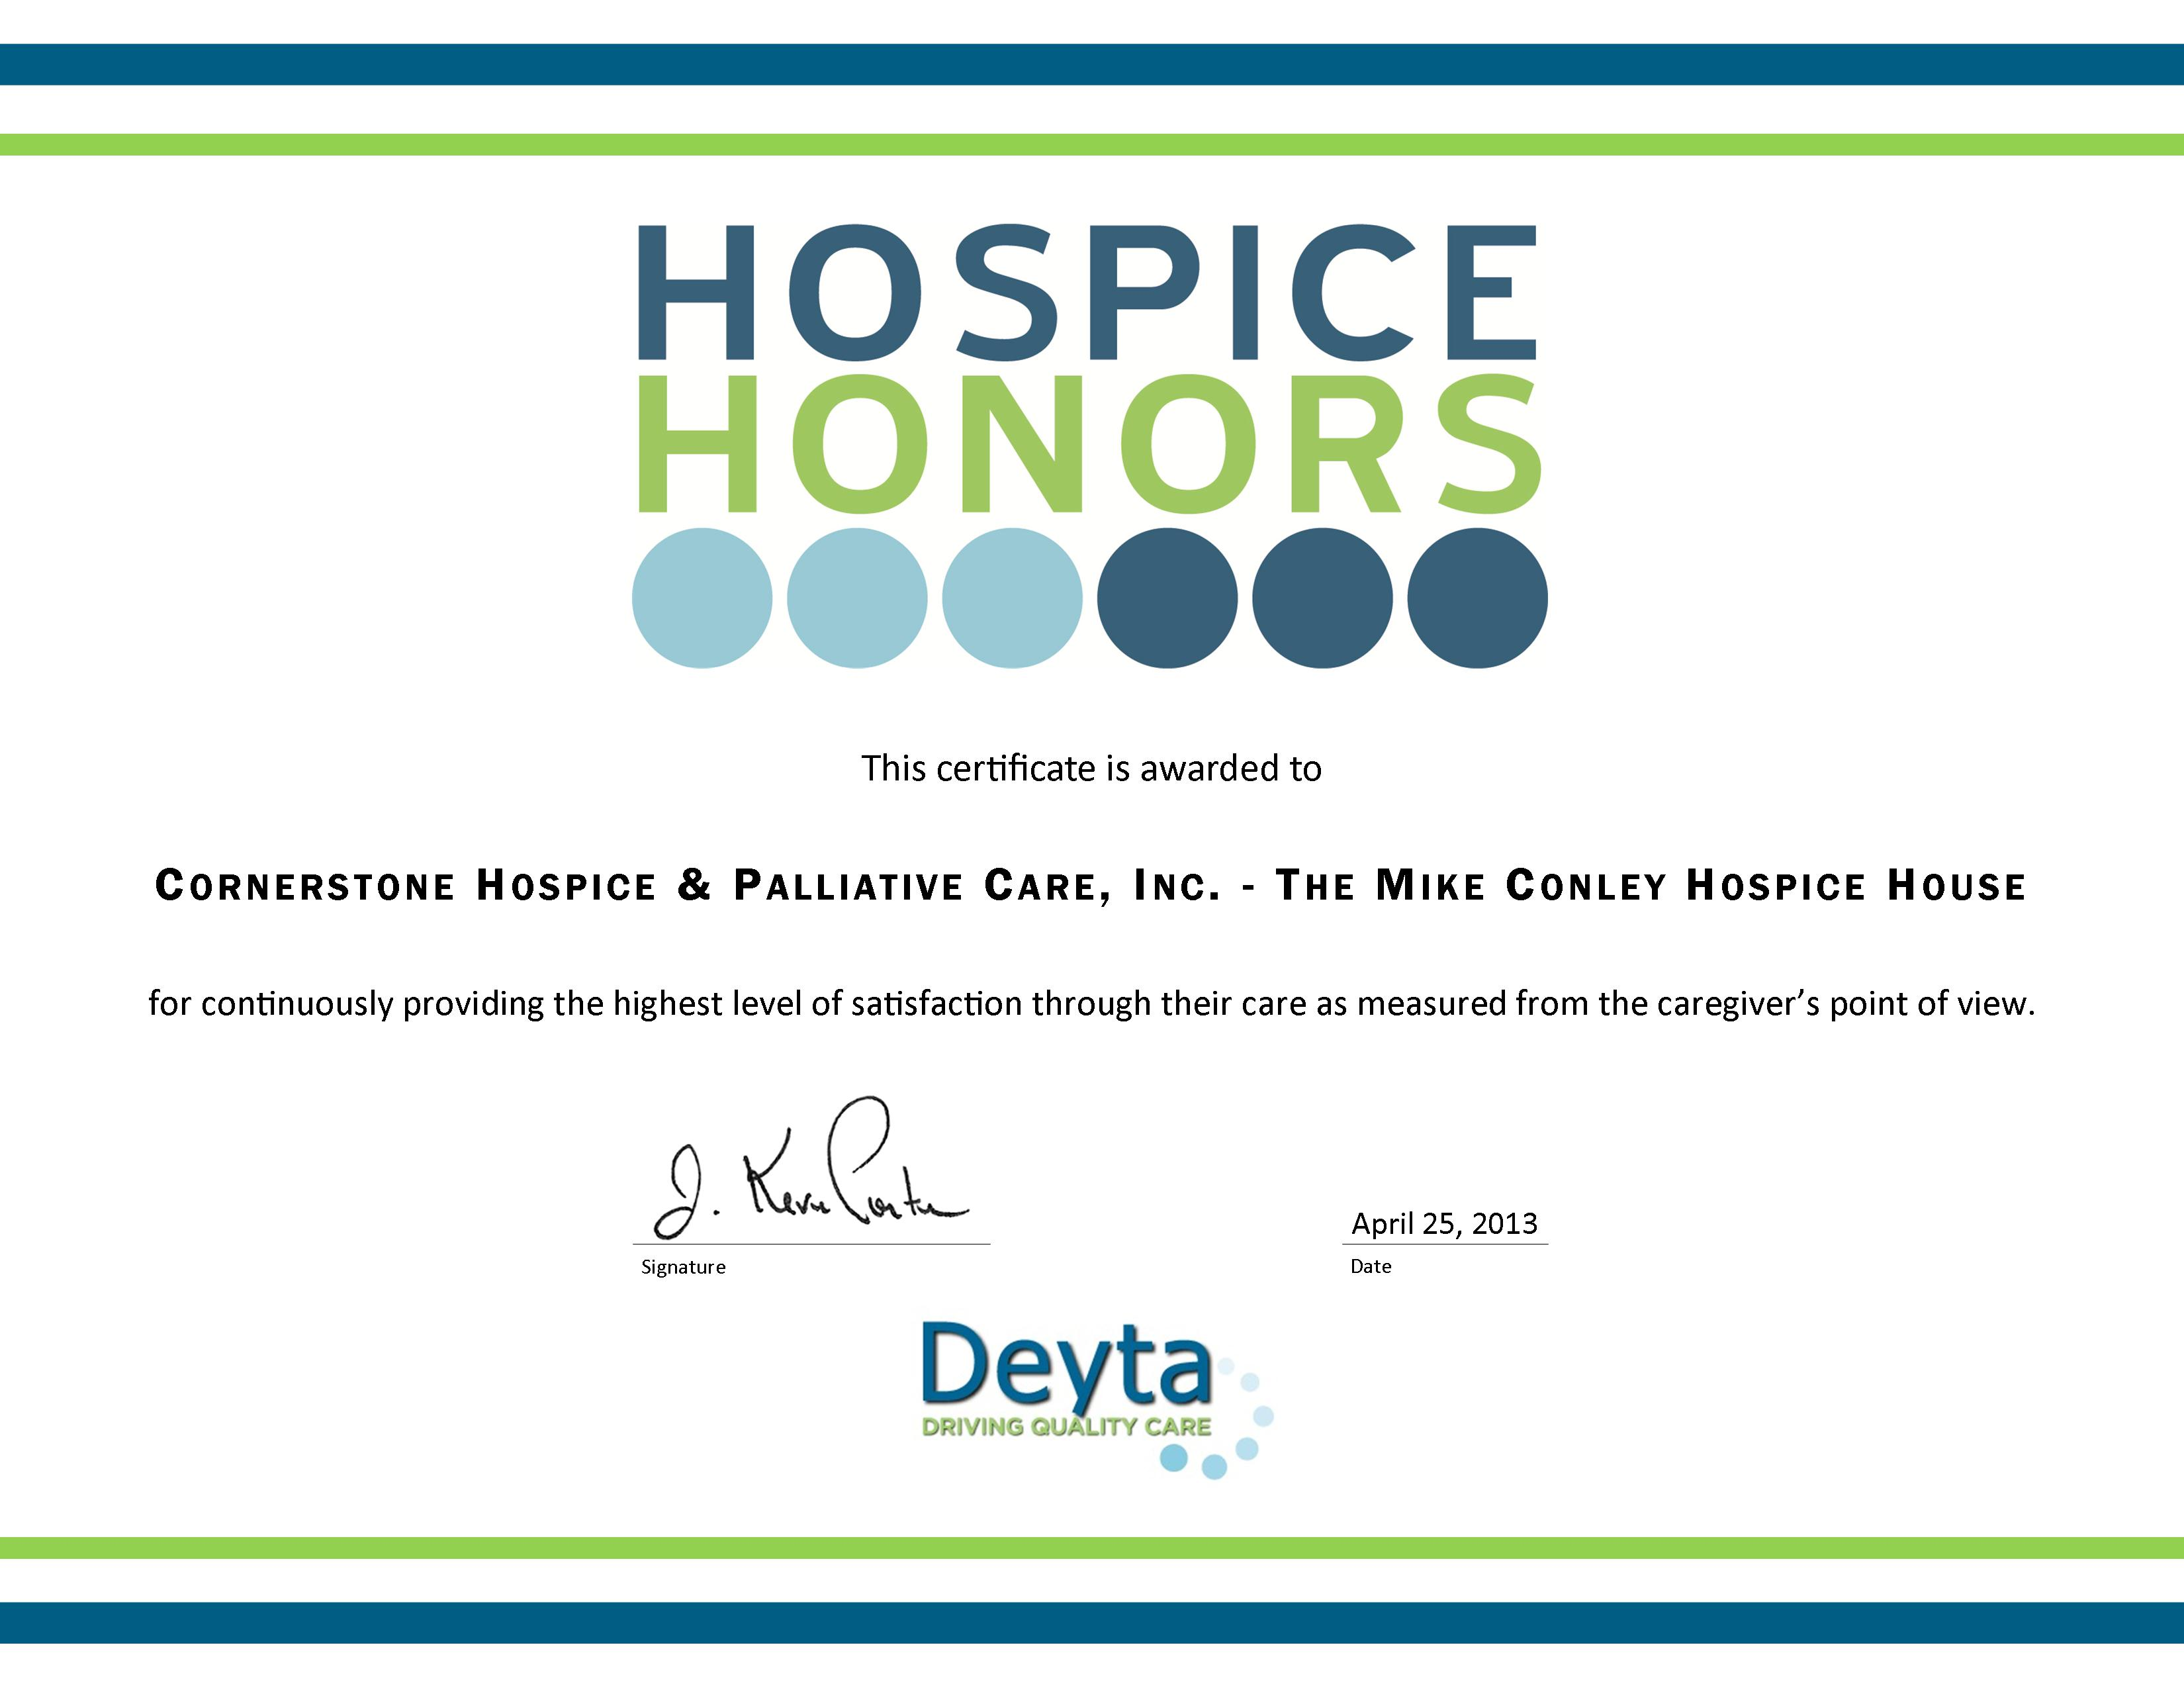 Cornerstone hospice named as 2013 hospice honors recipient the mike conley hospice house in clermont was specifically noted for providing excellent patient care as part of deytas survey of hospice providers 1betcityfo Choice Image